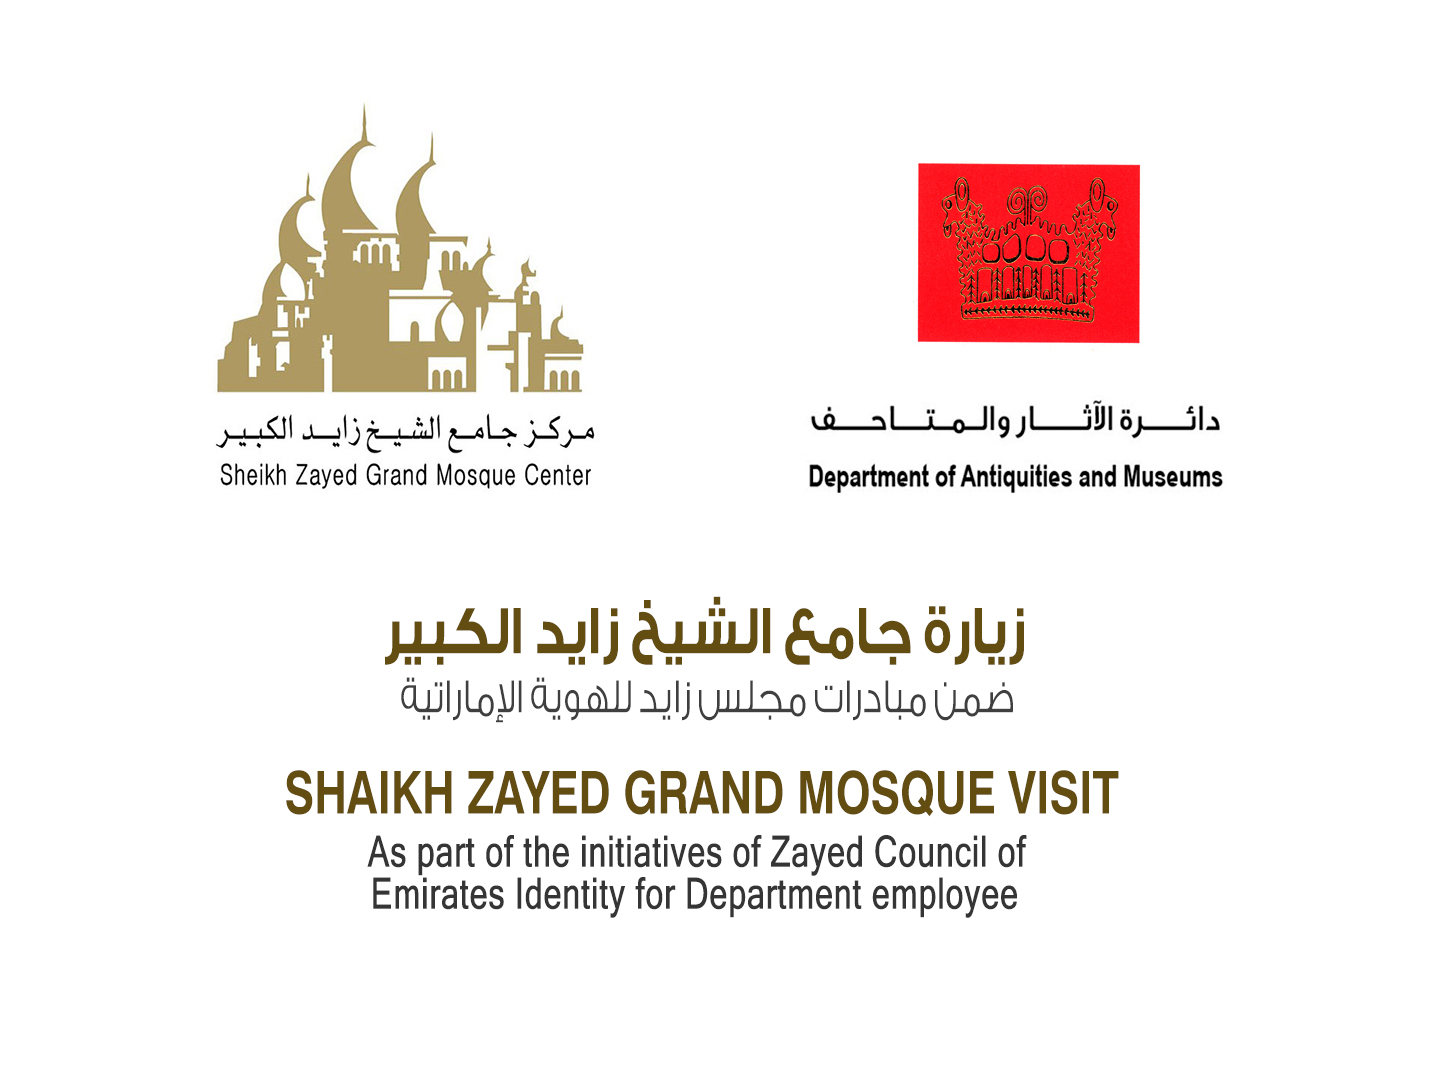 SHAIKH ZAYED GRAND MOSQUE VISIT